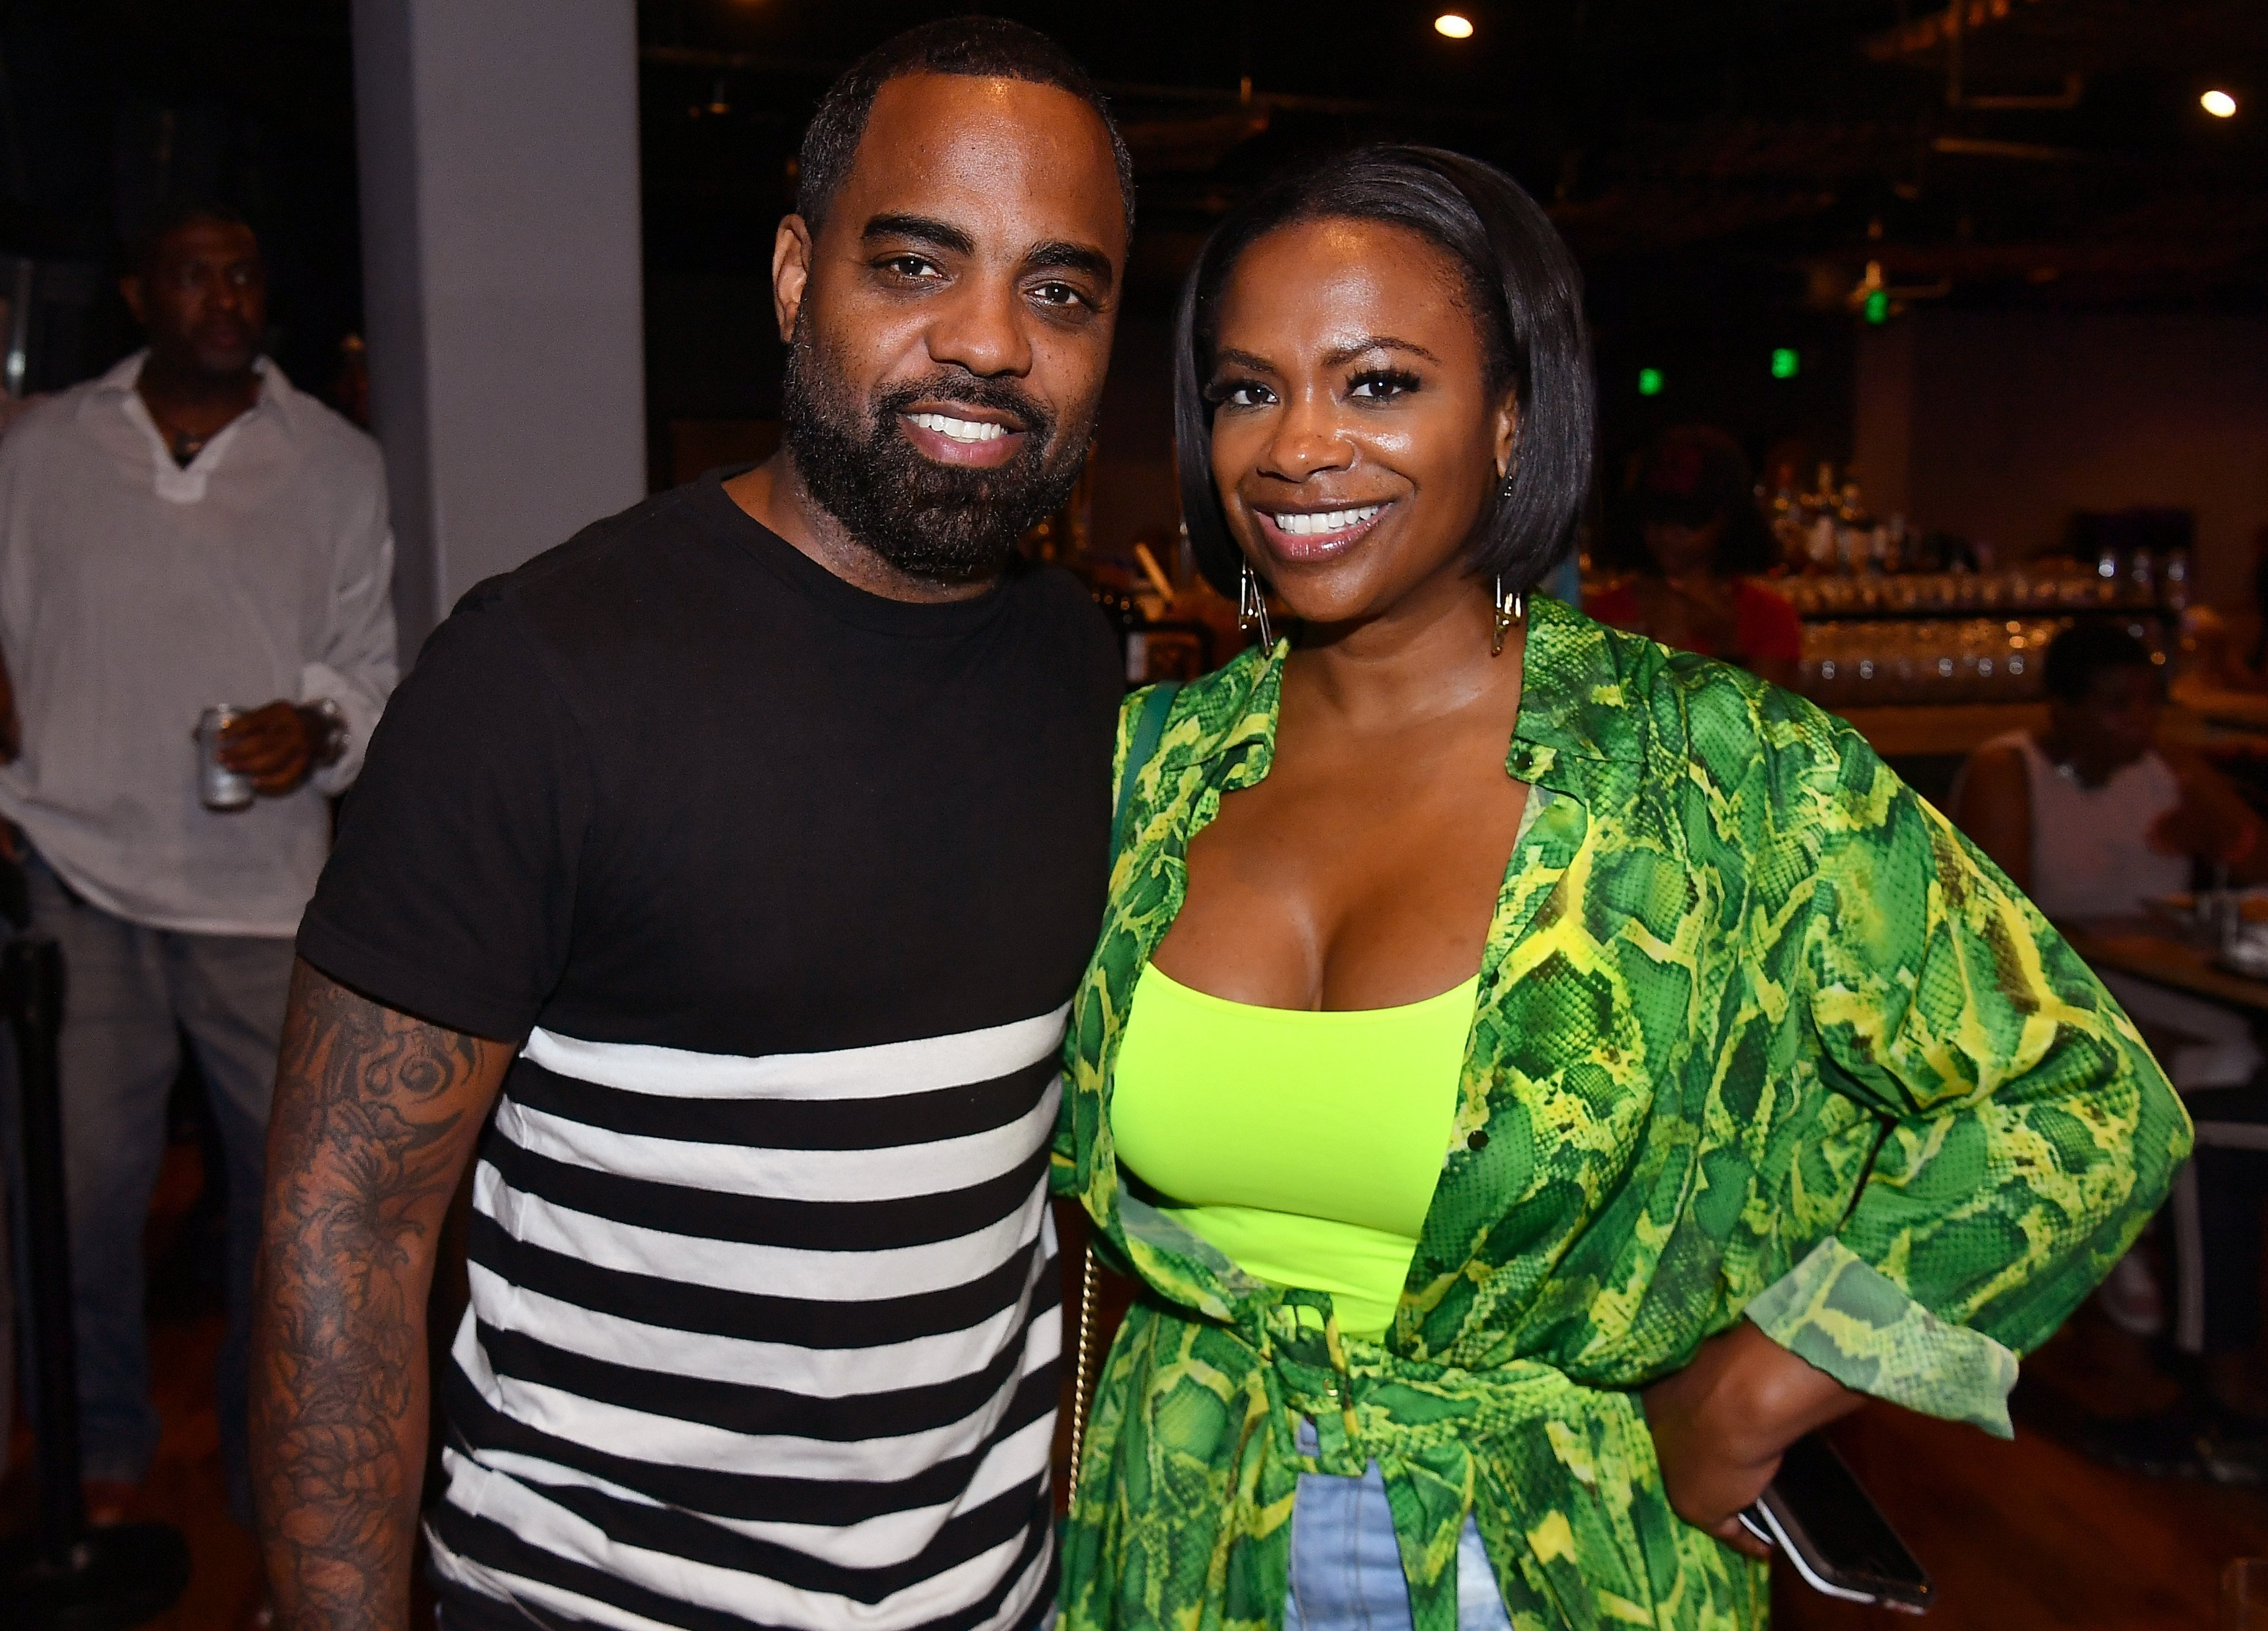 Kandi Burruss and husband Todd Tucker pose in a Majic 107.5 event in Atlanta in September 2019. | Source: Getty Images